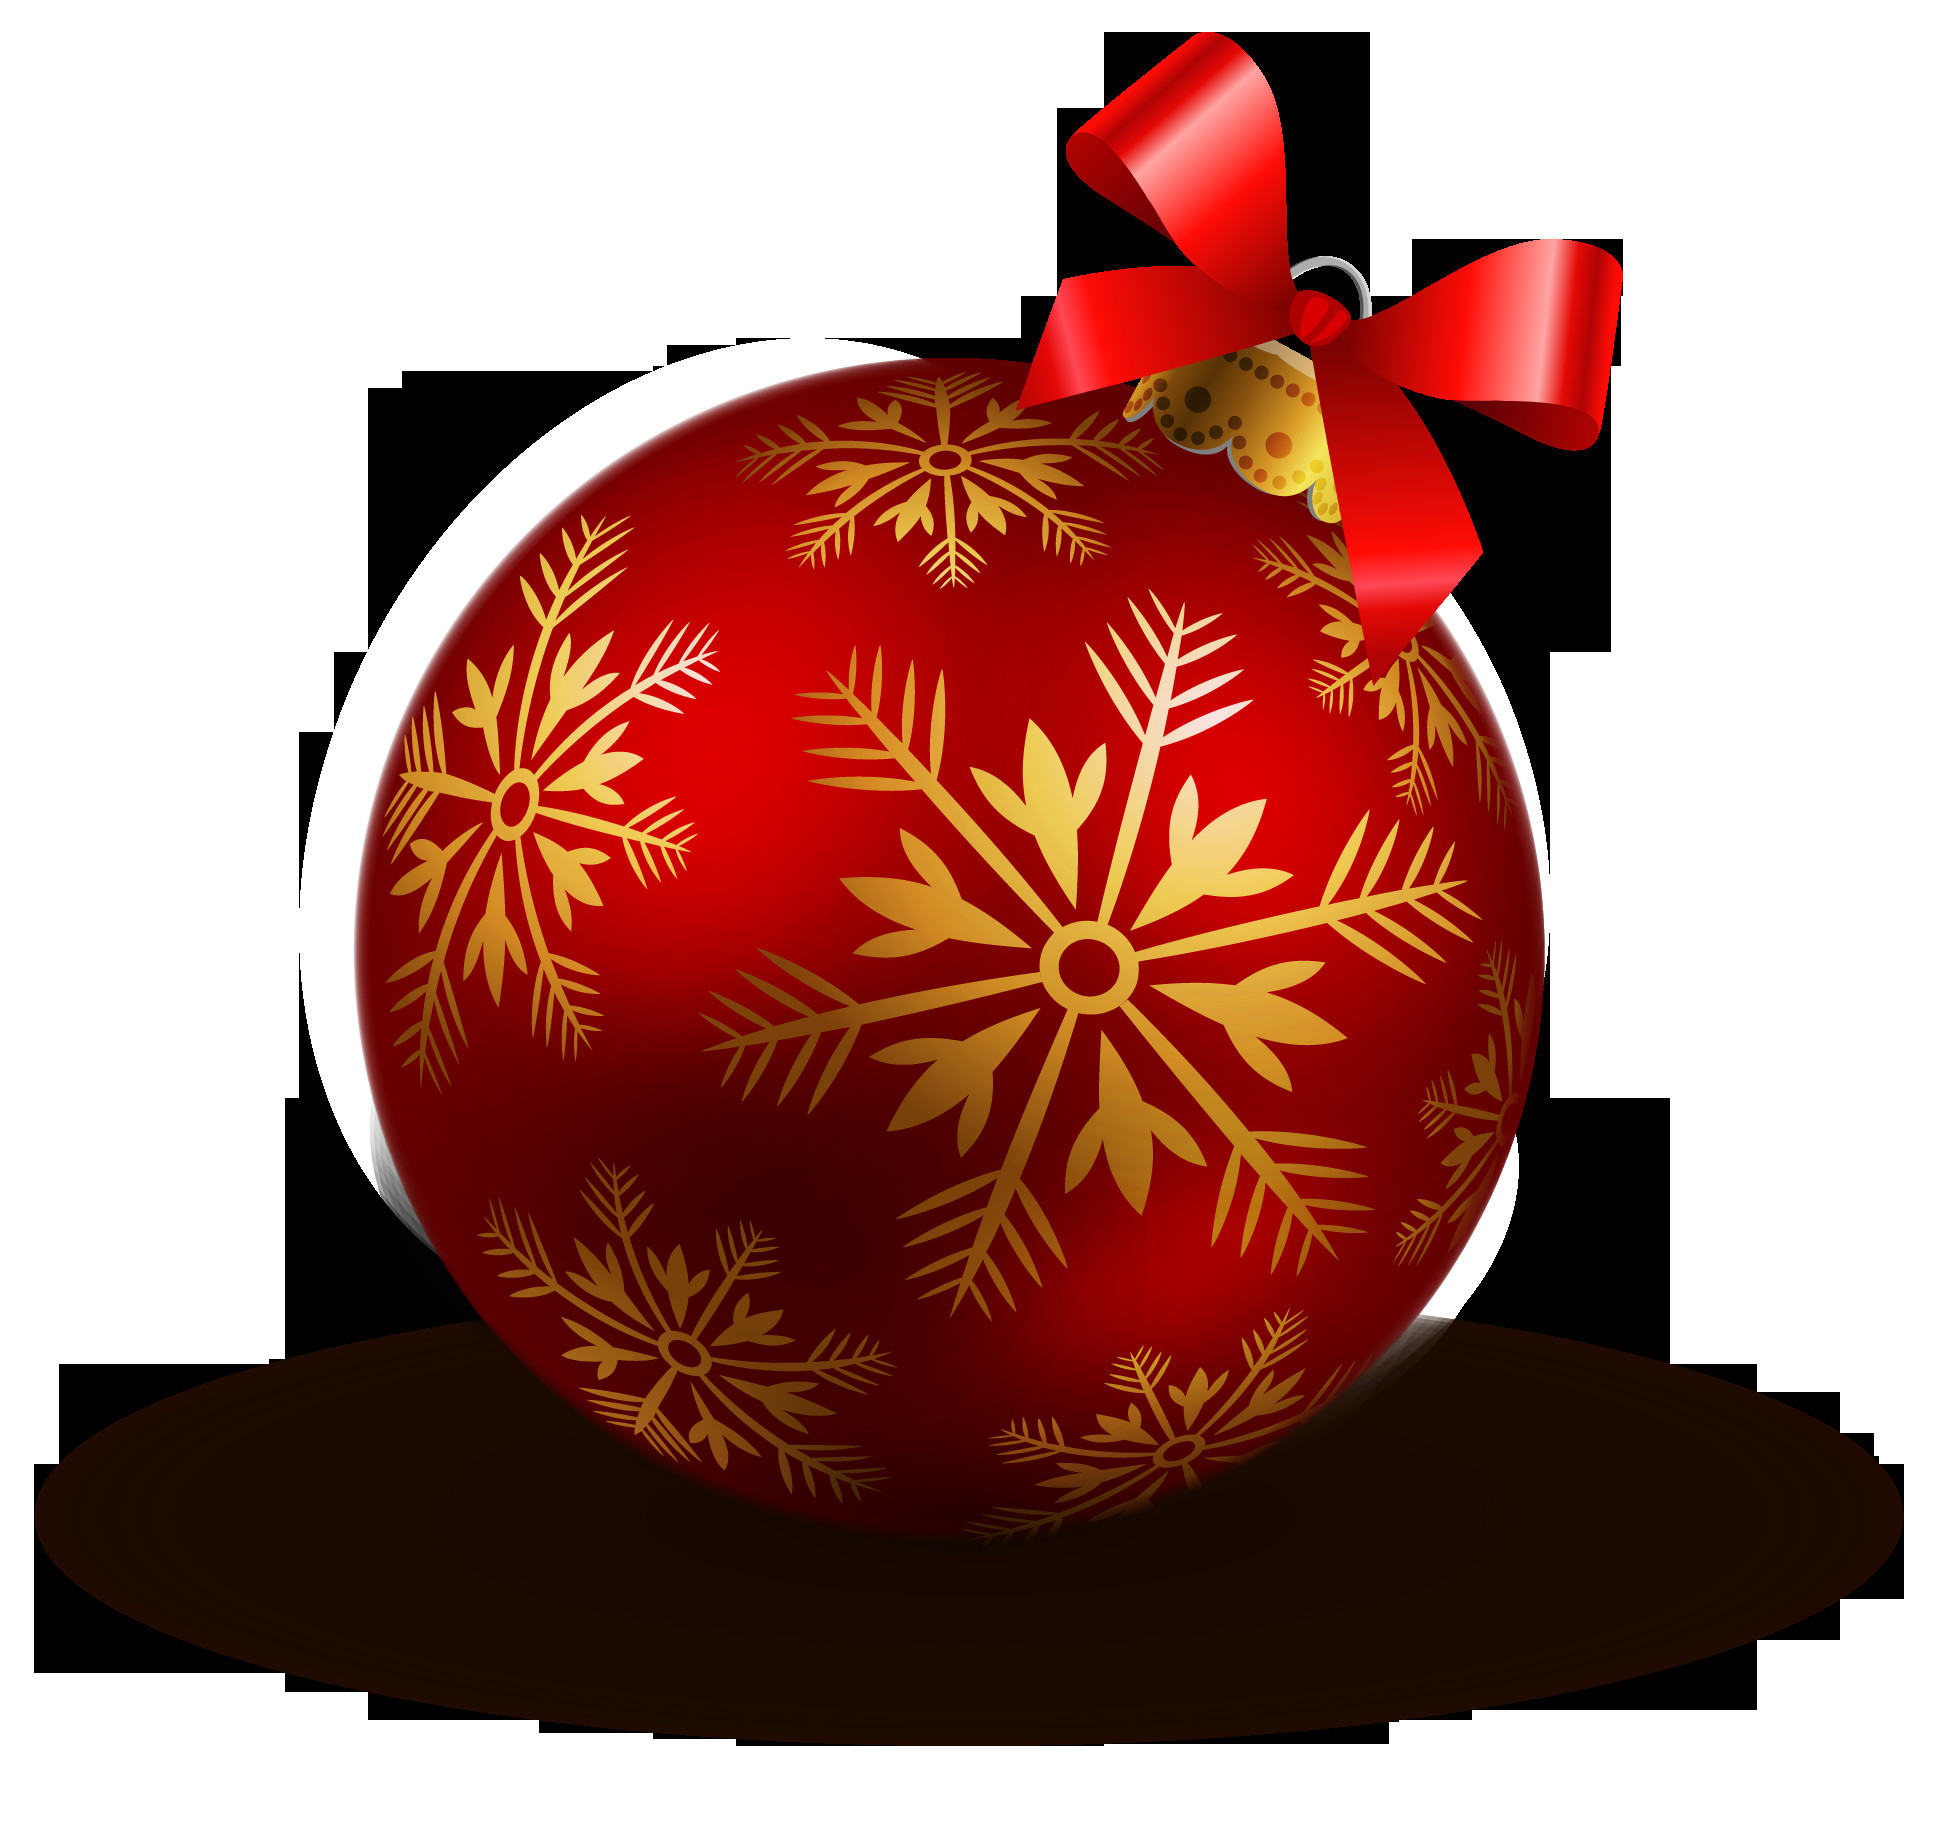 Christmas ornaments Elegant Christmas ornament Png Transparent Free Of Incredible 48 Images Christmas ornaments